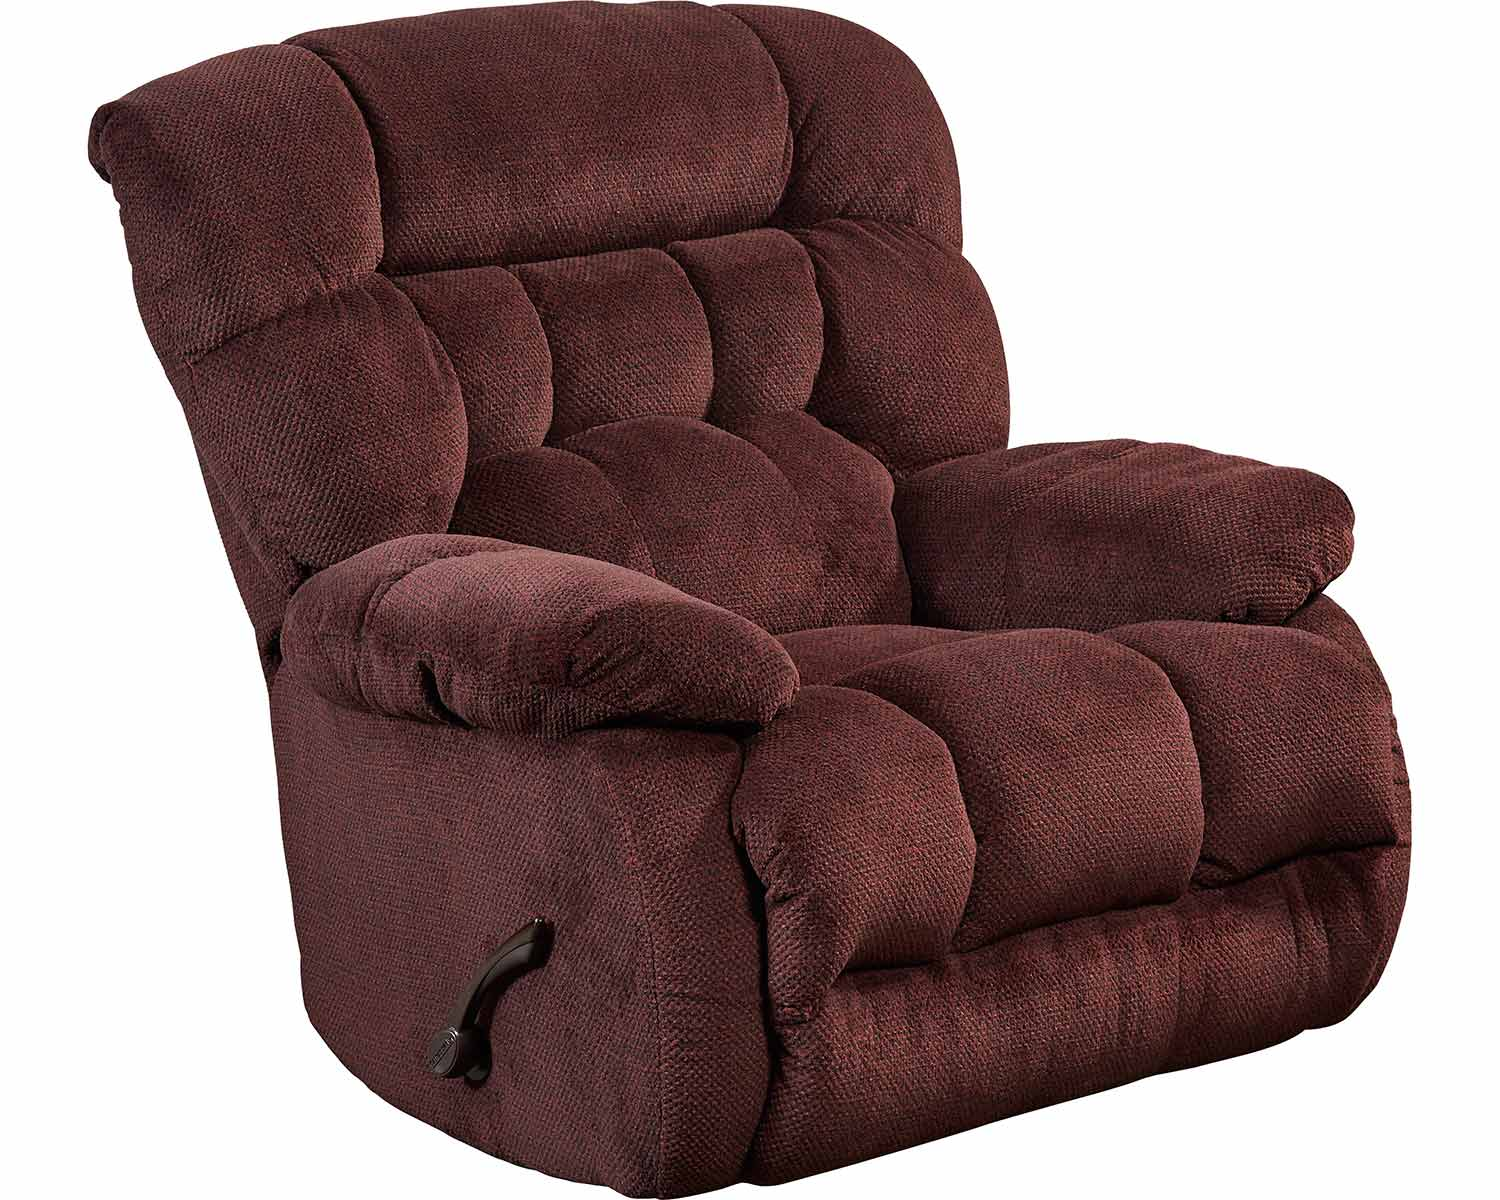 CatNapper Daly Chaise Rocker Recliner Chair - Cranapple